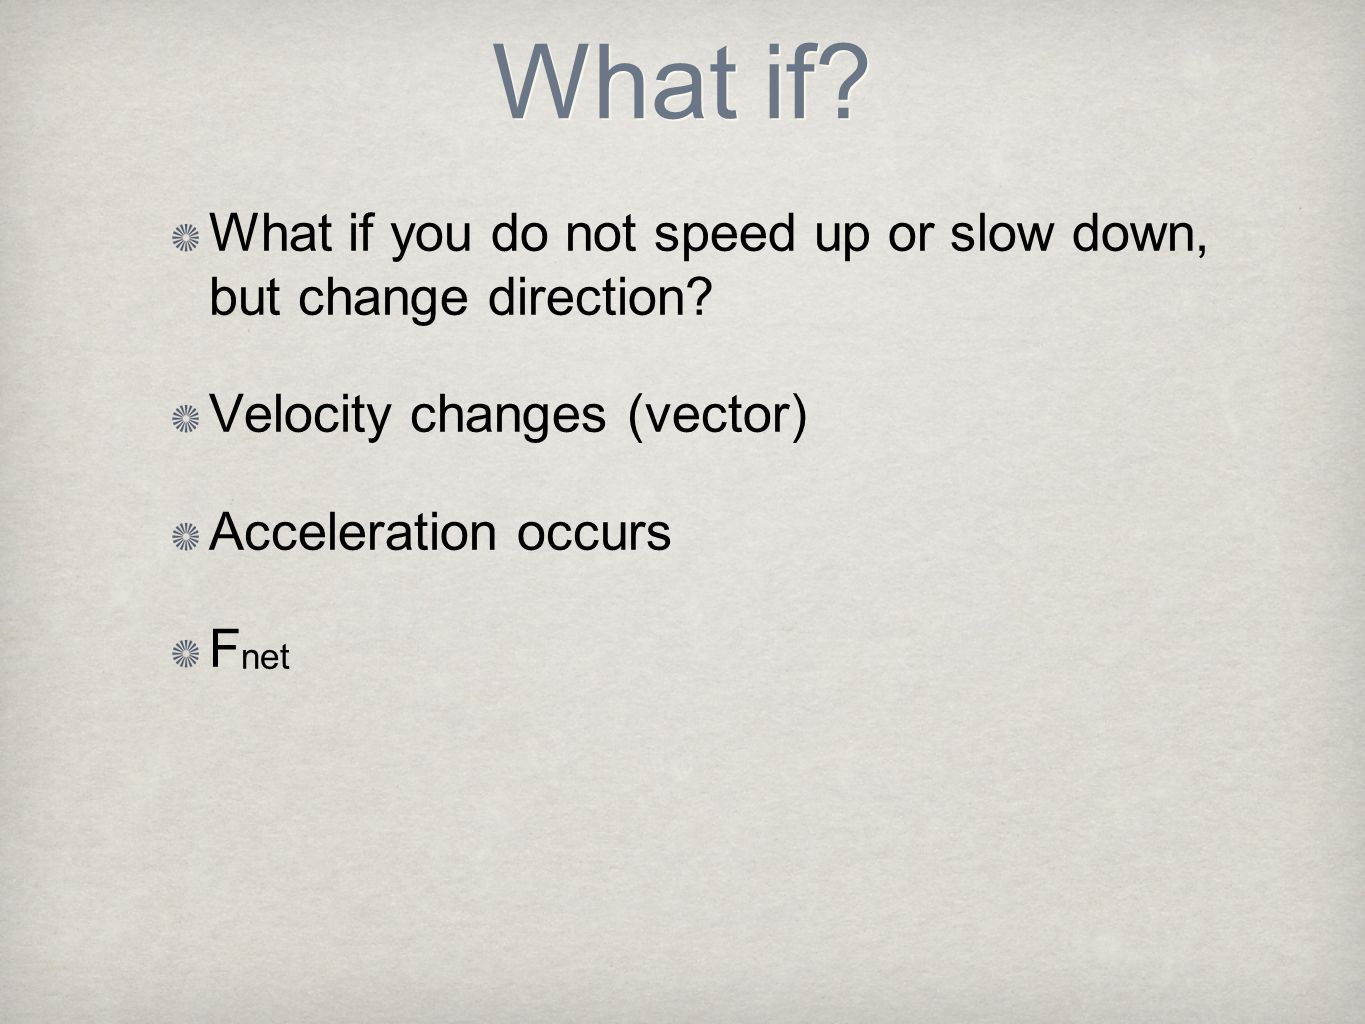 What if What if you do not speed up or slow down, but change direction Velocity changes (vector)